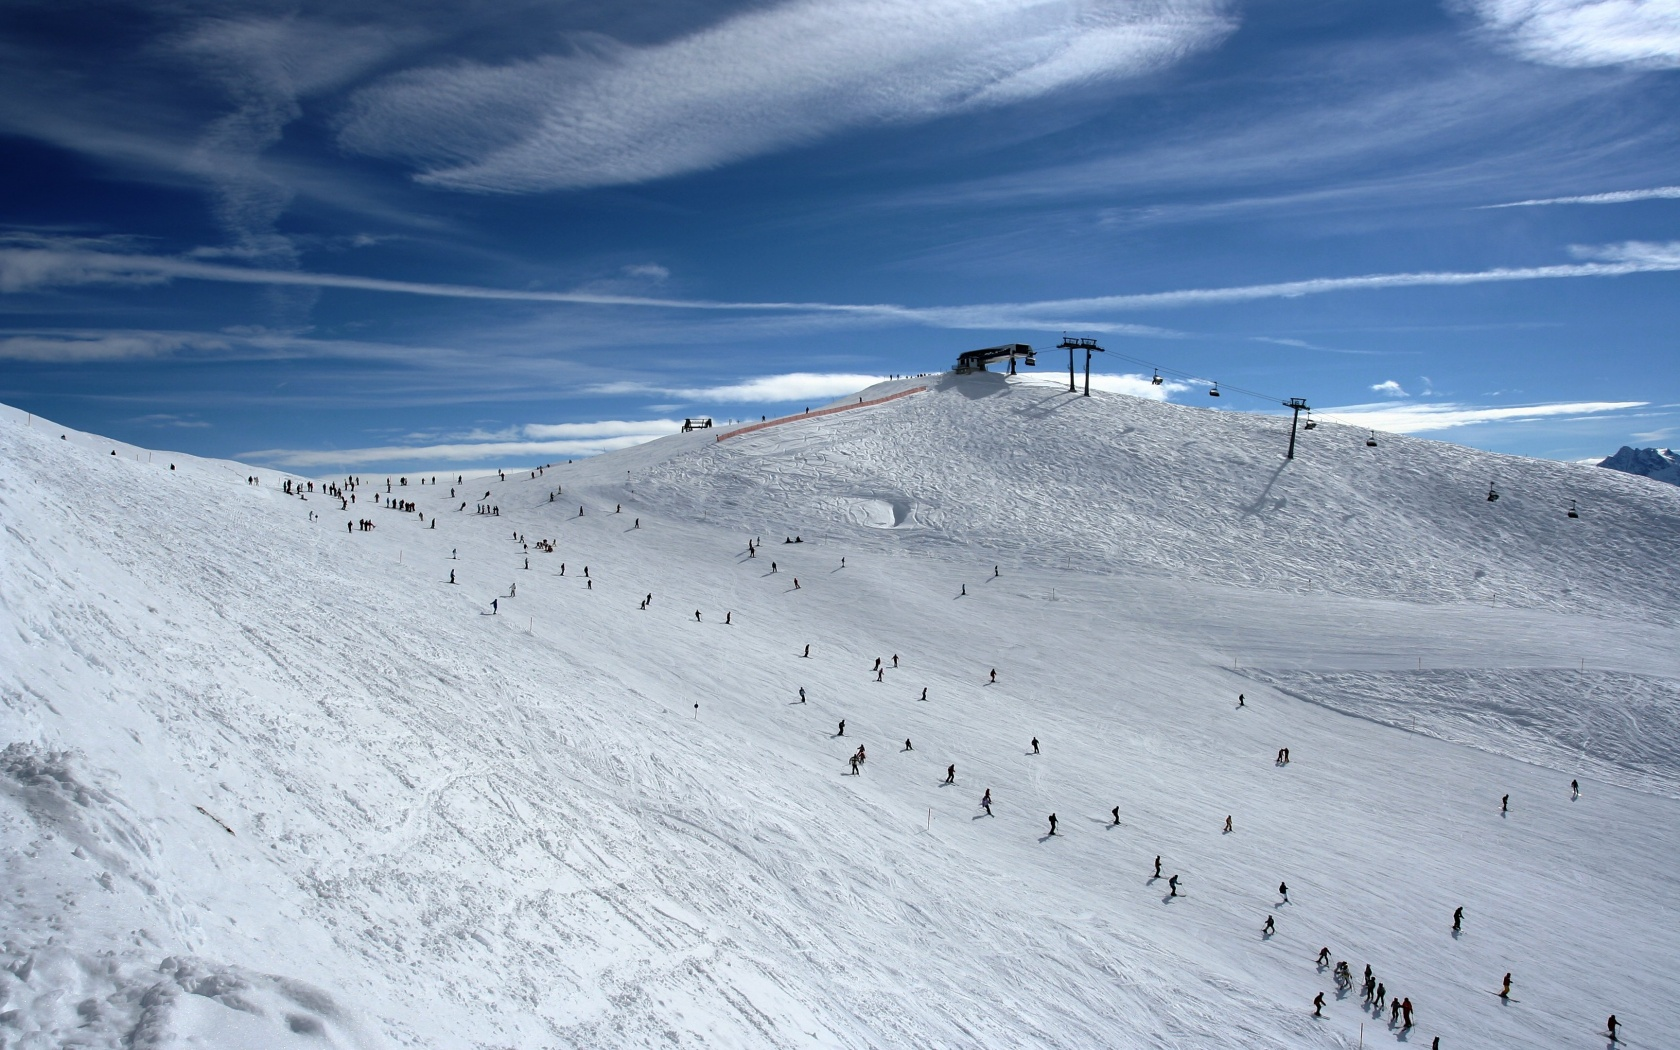 Ski Resort wallpapers and images   wallpapers pictures photos 1680x1050